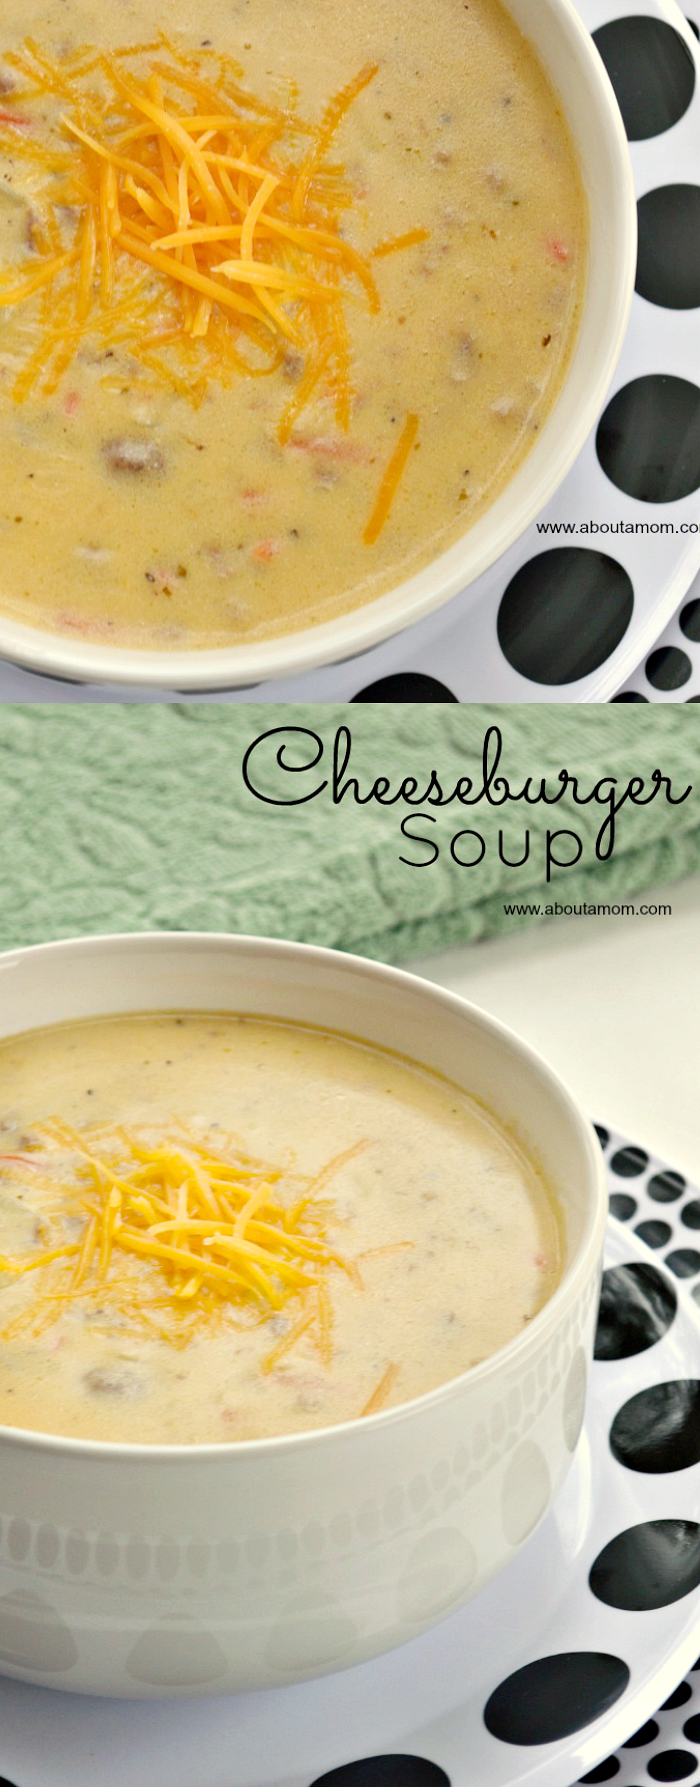 Cheeseburger Soup Recipe